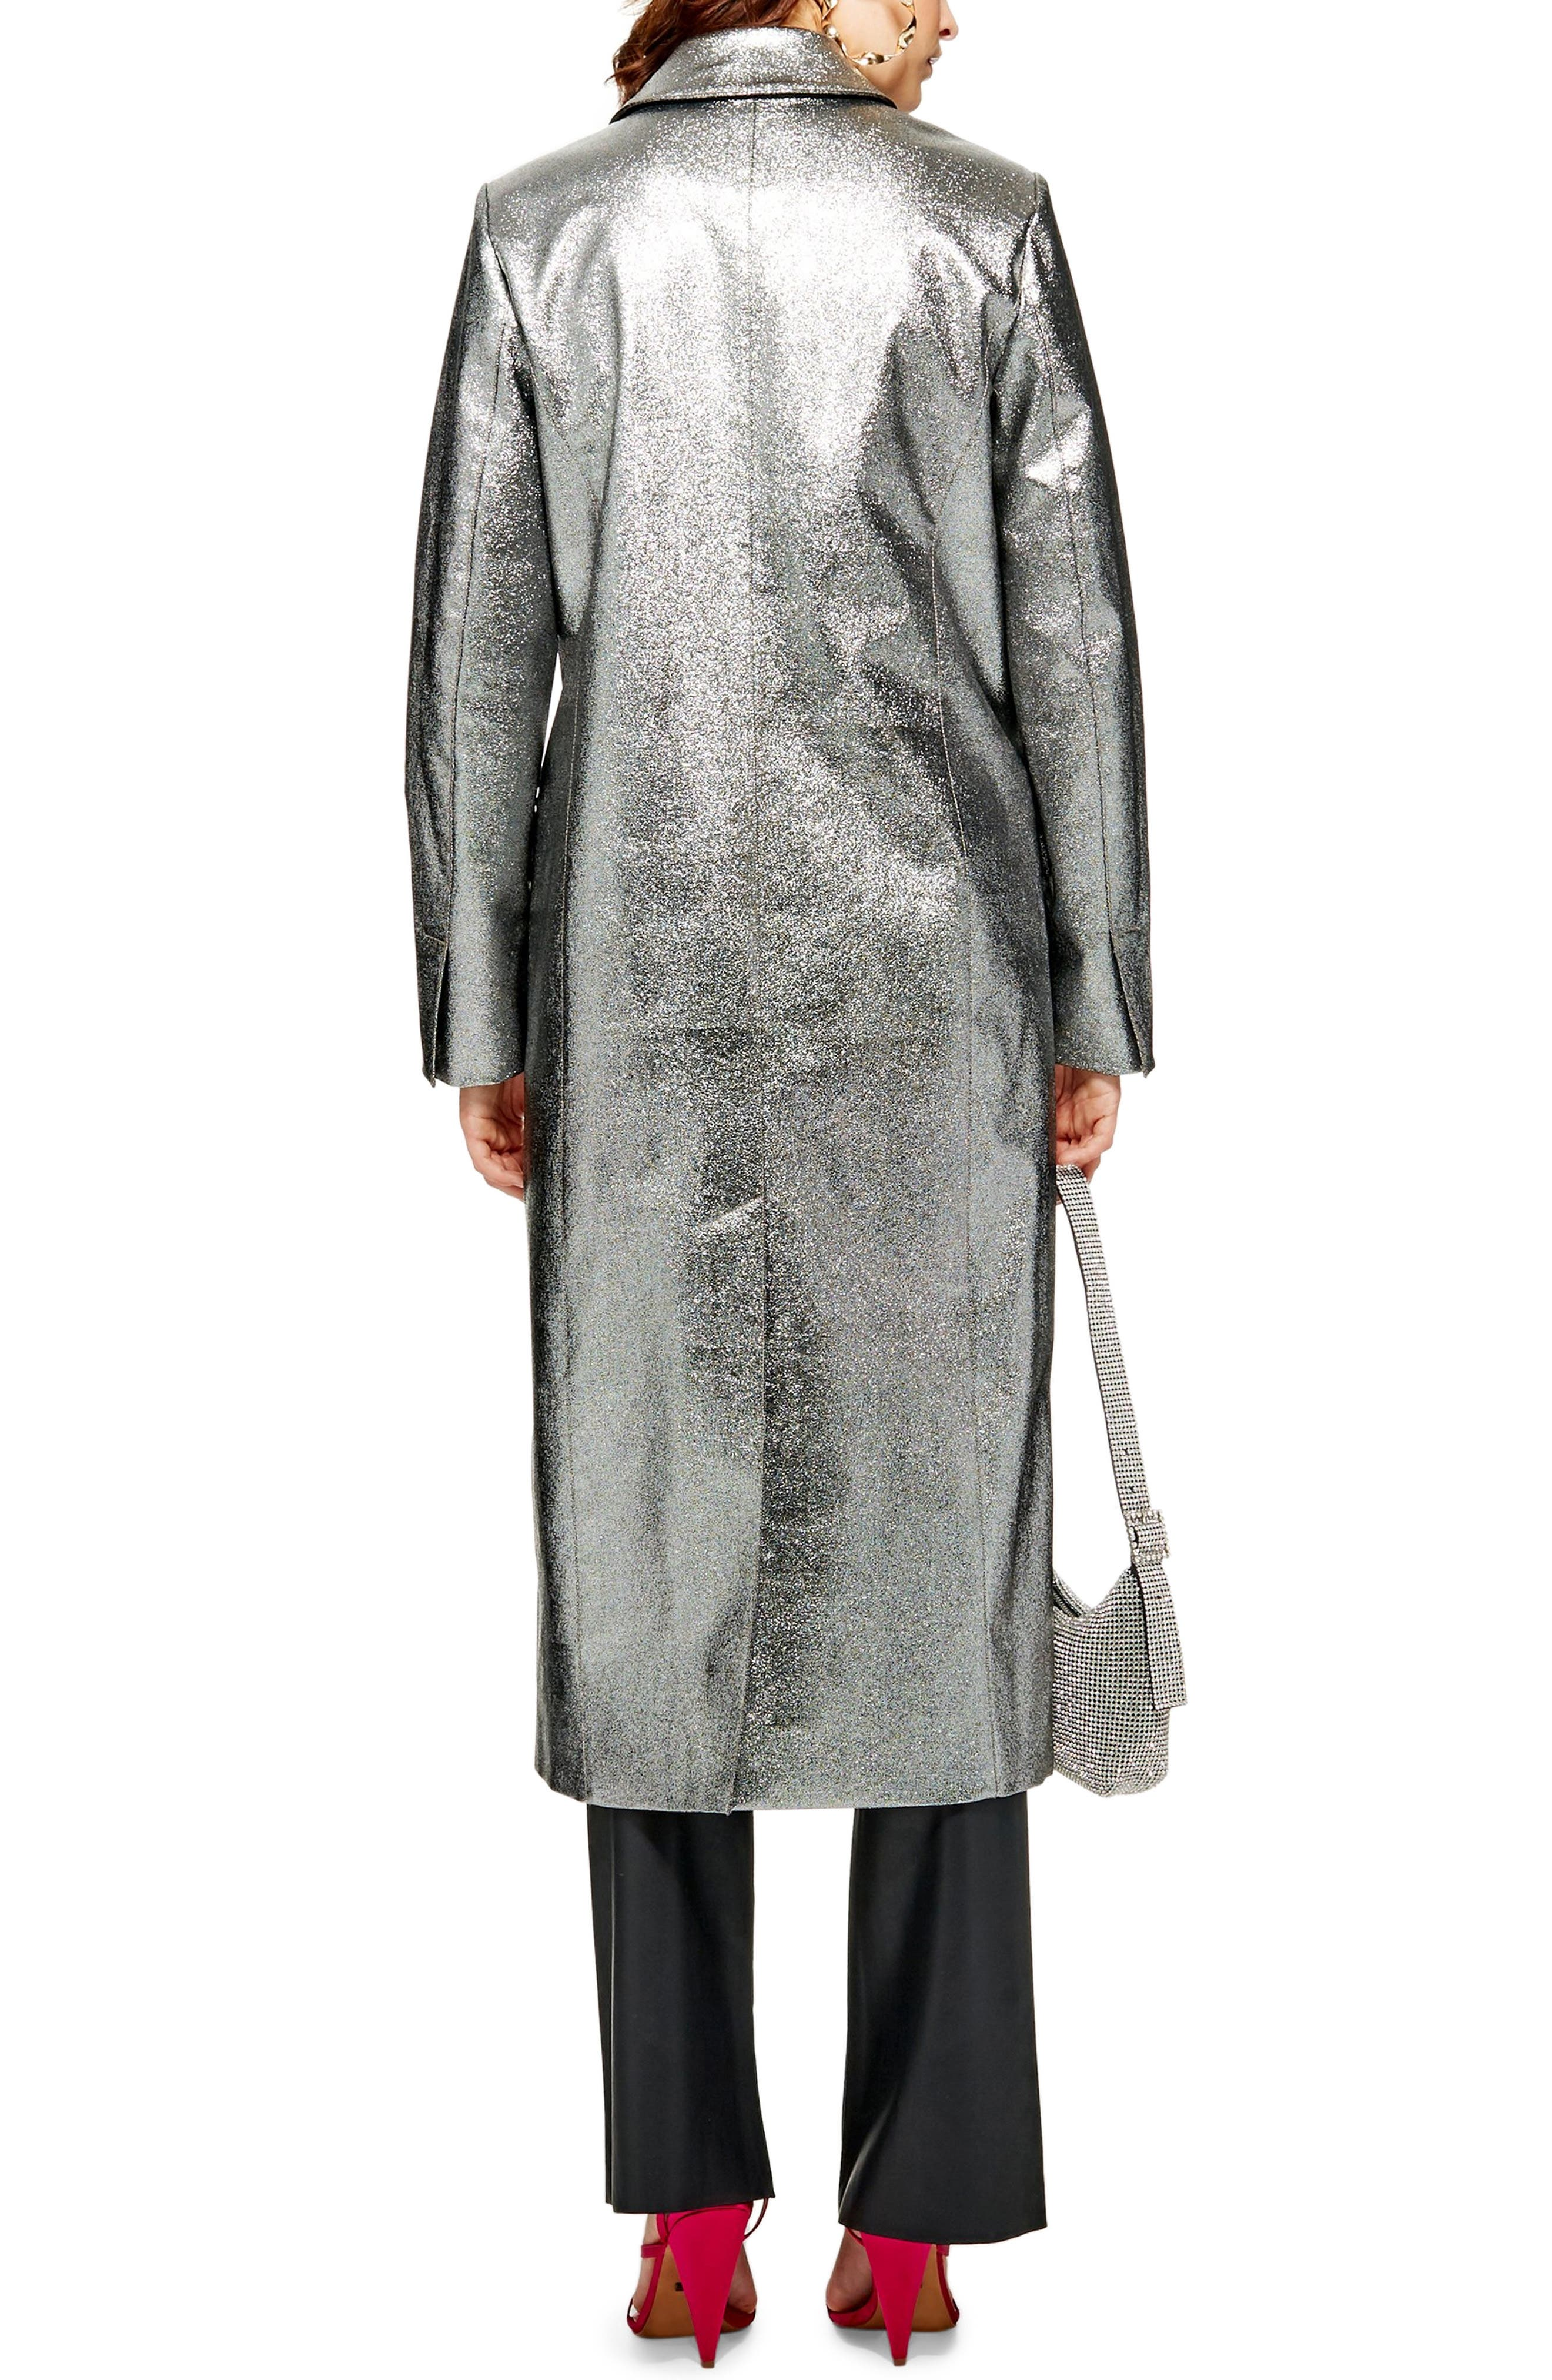 TOPSHOP,                             Twinkle Textured Coat,                             Alternate thumbnail 2, color,                             SILVER